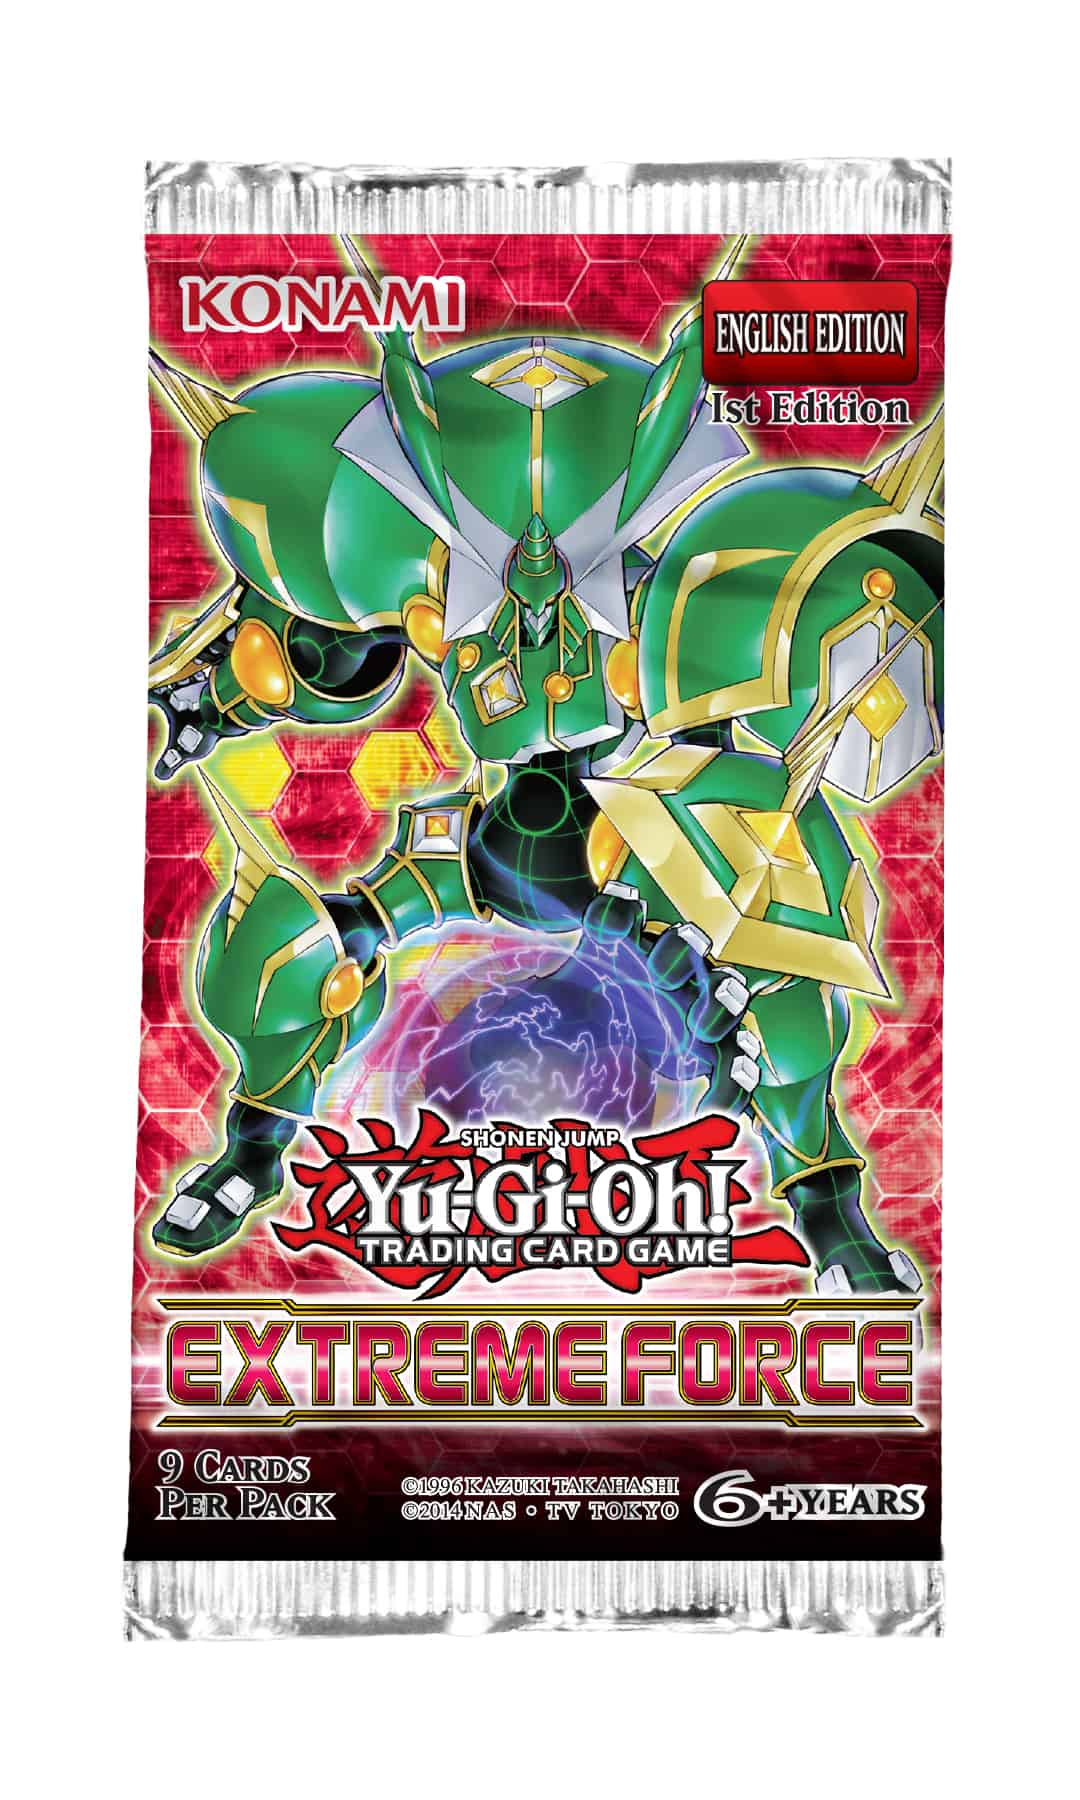 tcg extreme force press release the organization